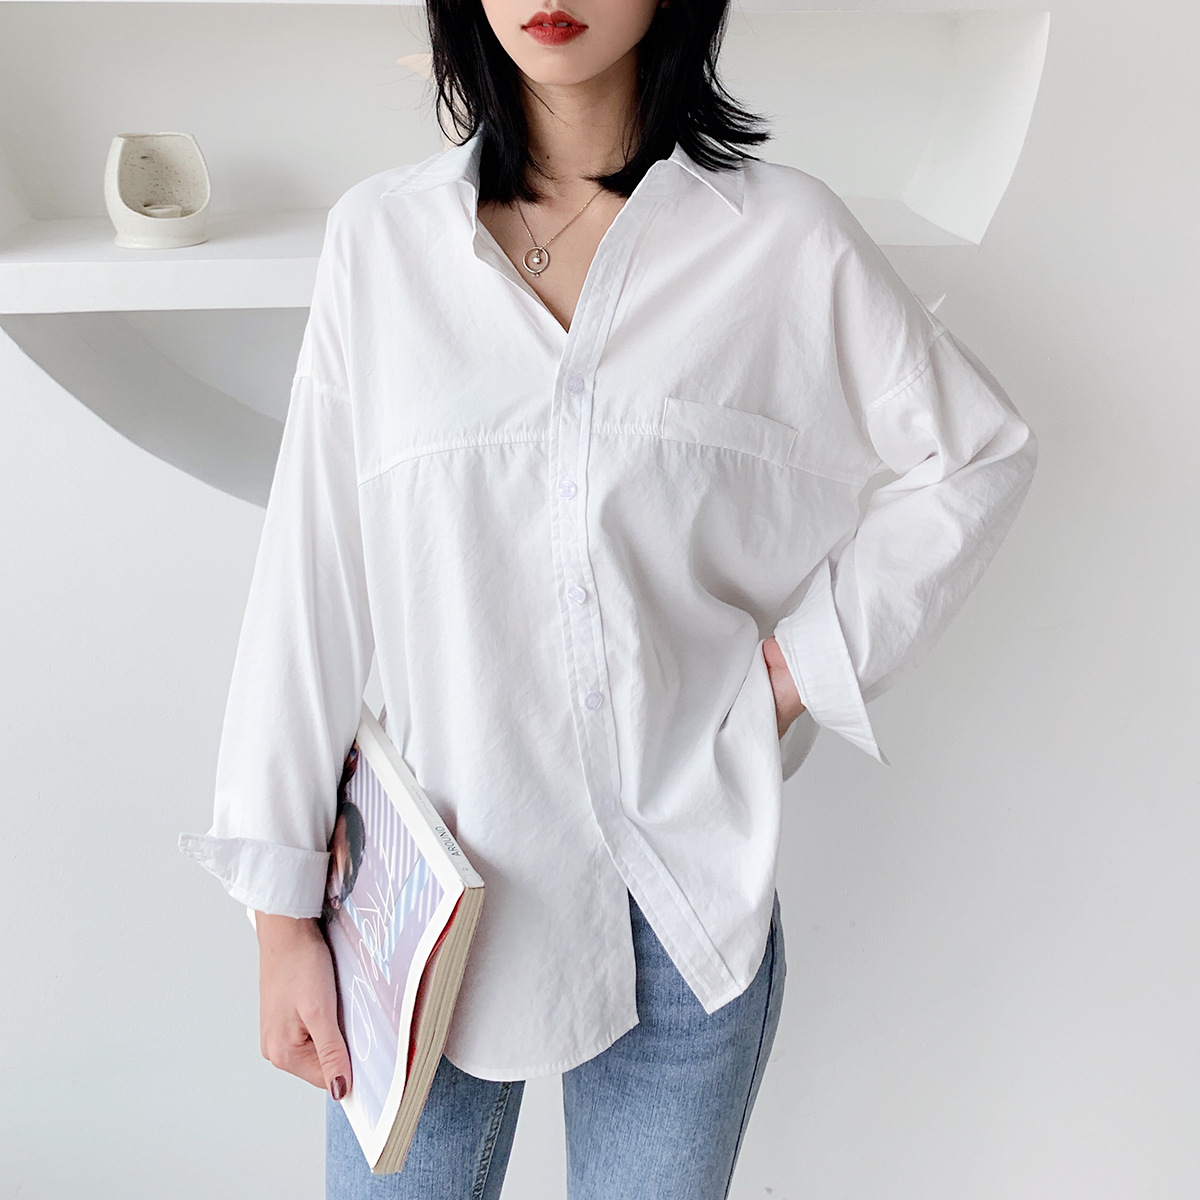 XIAOMIYINUO 5838 solid color shirt women's 2020 summer new Korean women's loose long sleeve versat